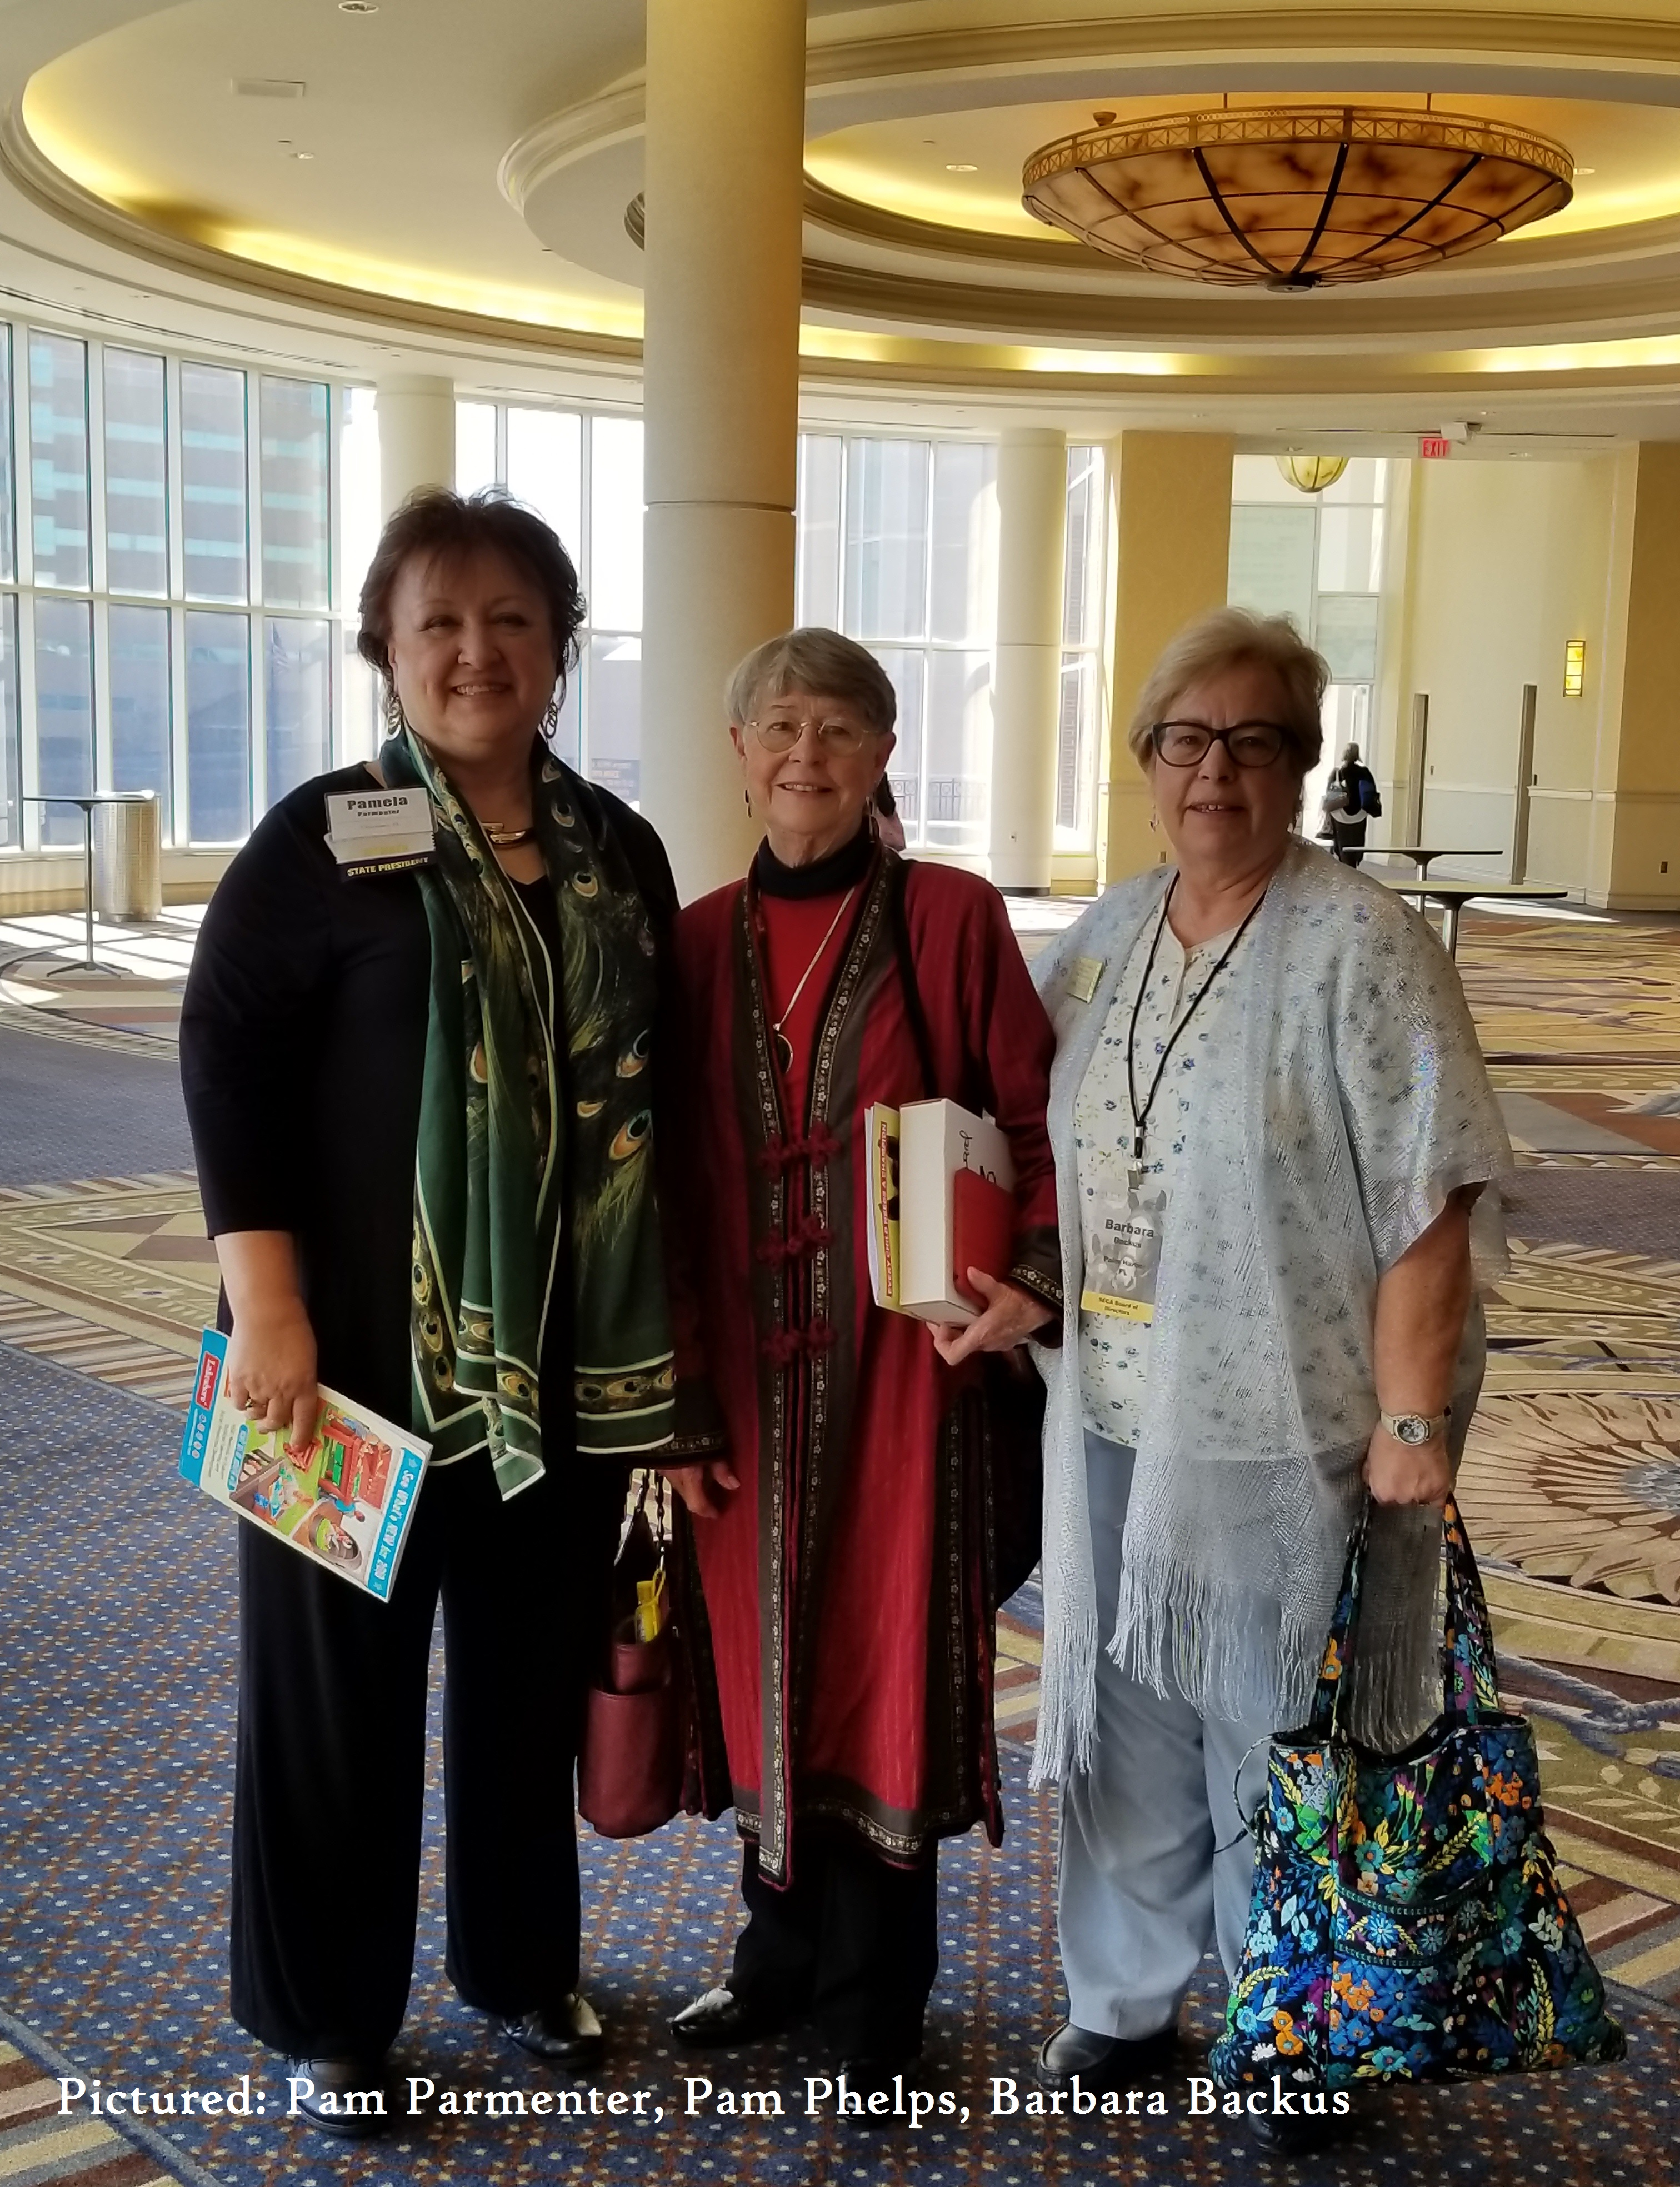 Pam Parmenter, Pam Phelps, Barbara Backus